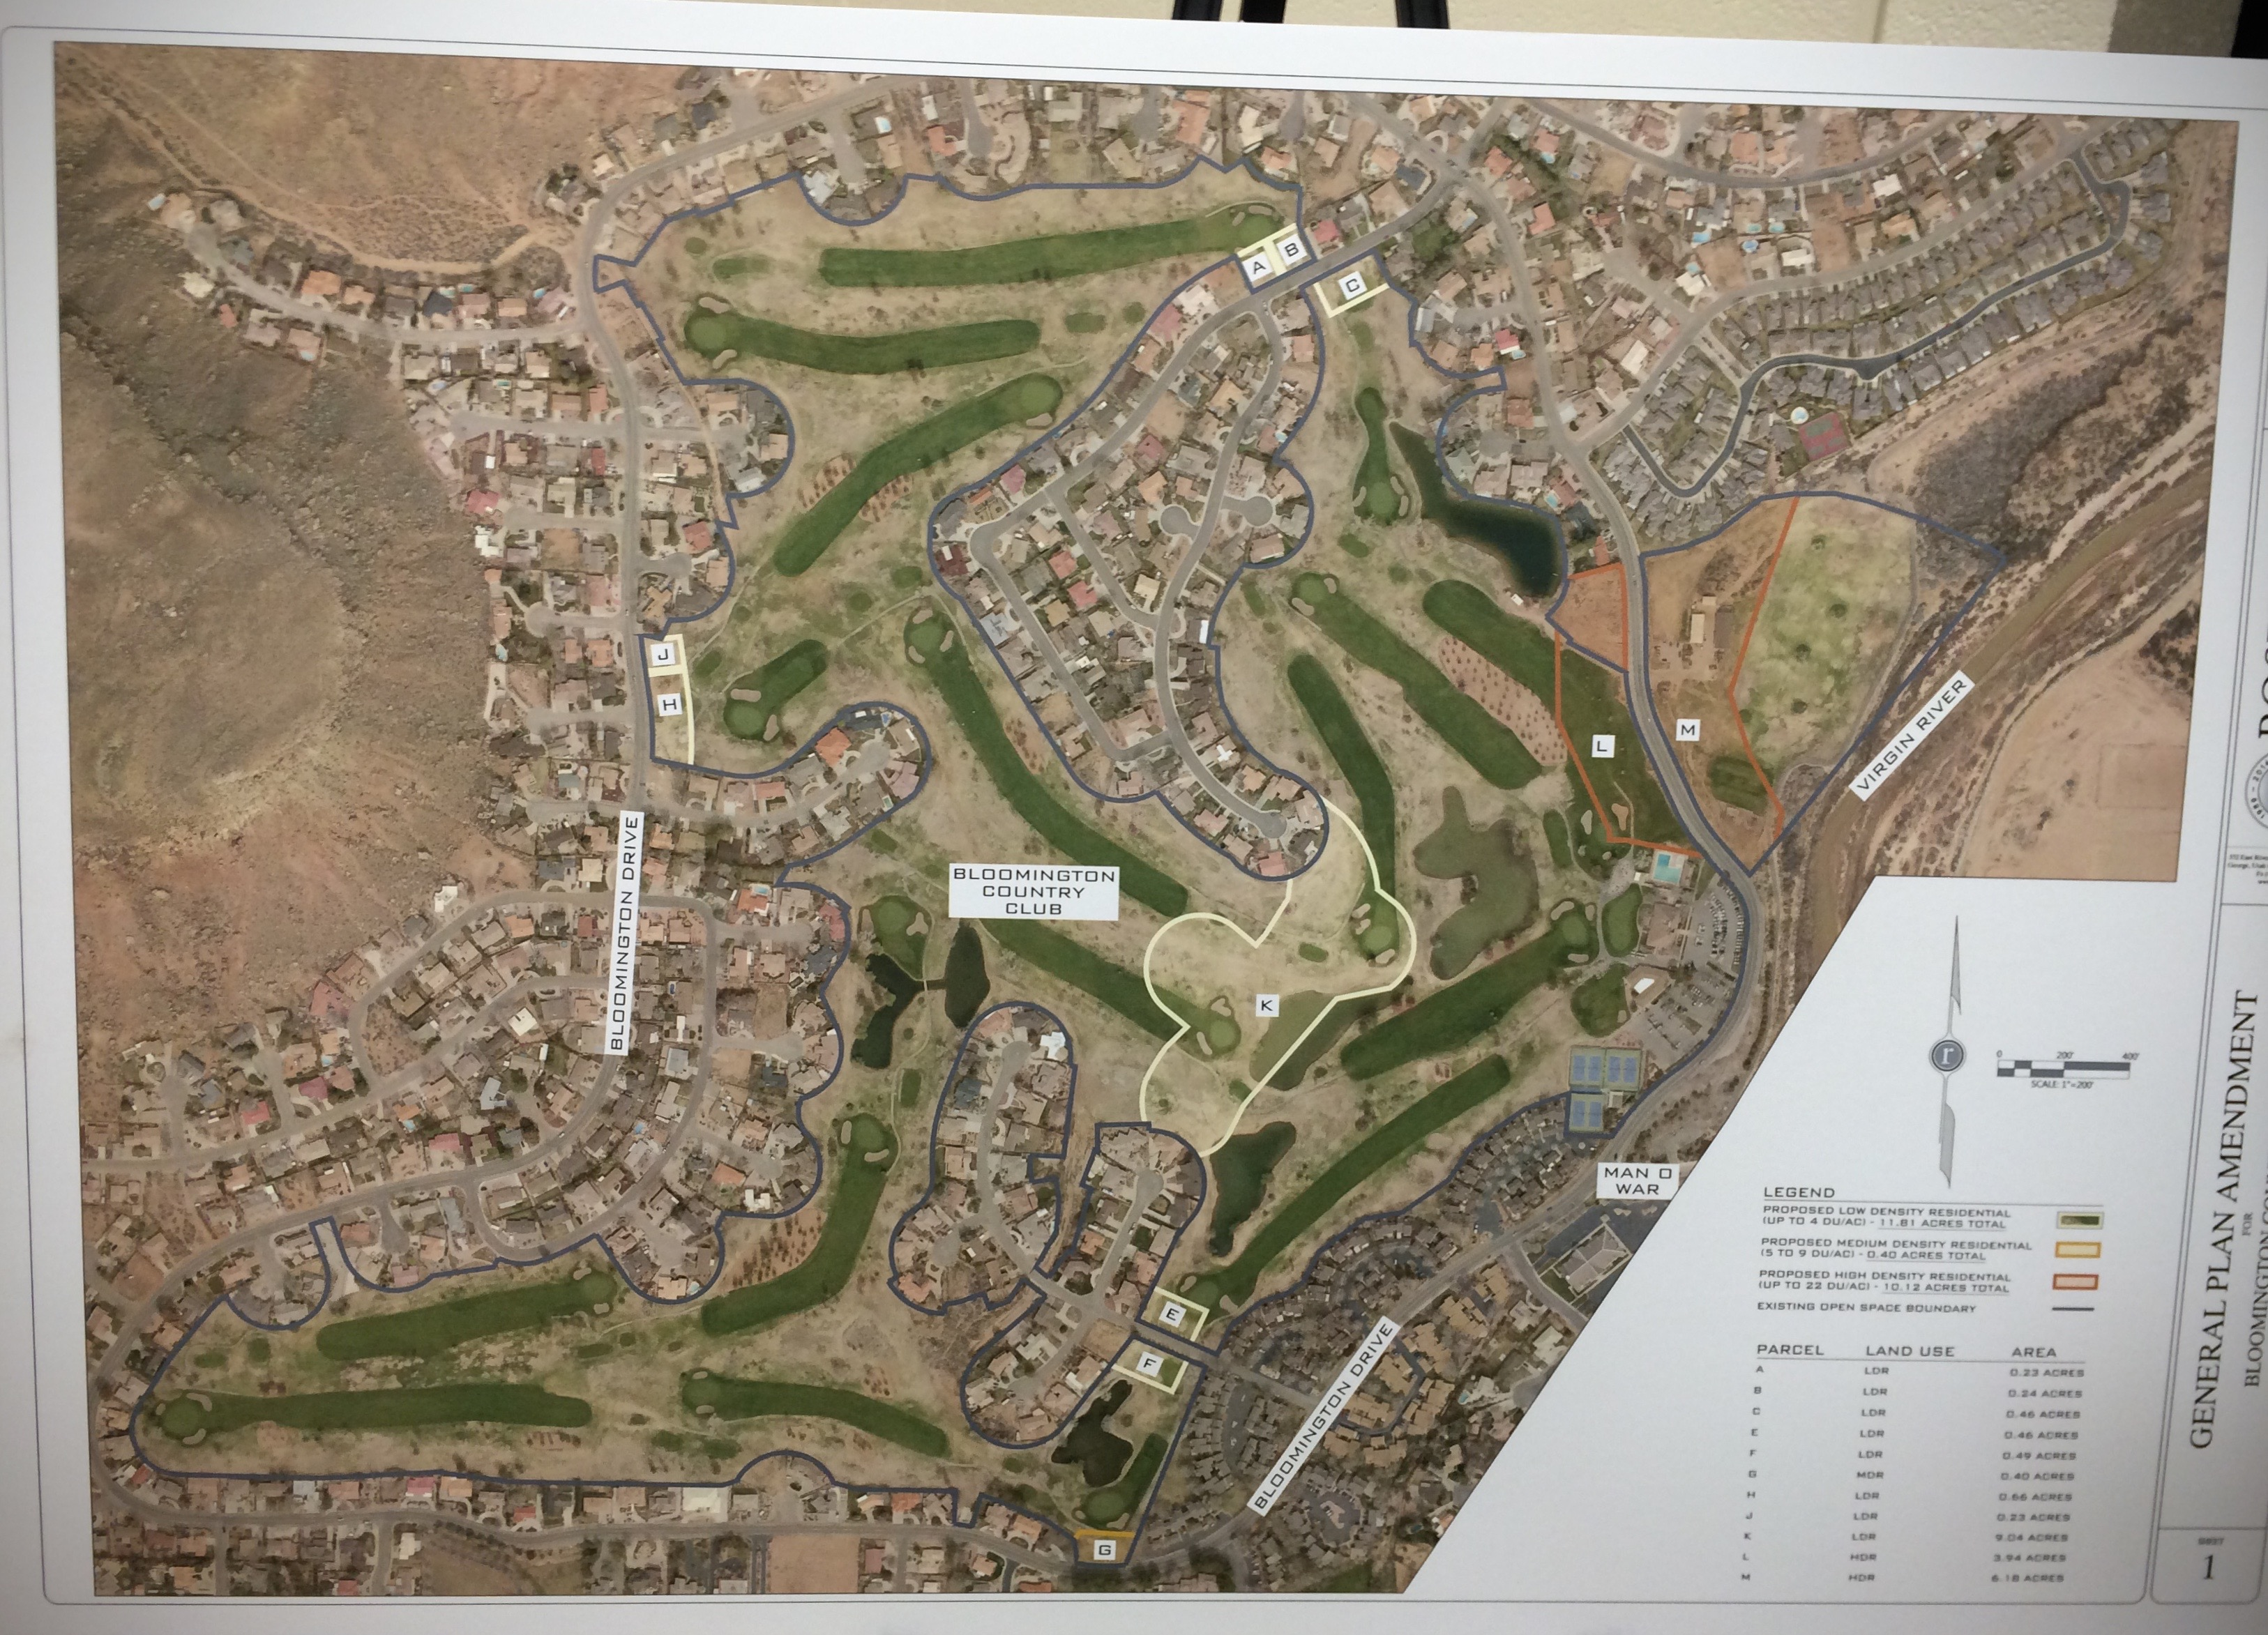 Diagrams of proposed general plan amendments to allow additional residential housing appurtenant to Bloomington Country Club, presented by Developer Darcy Stewart at a community meeting at Bloomington Elementary School in St. George, Utah, Oct. 1, 2015 | Photo by JJ Deforest, St. George News